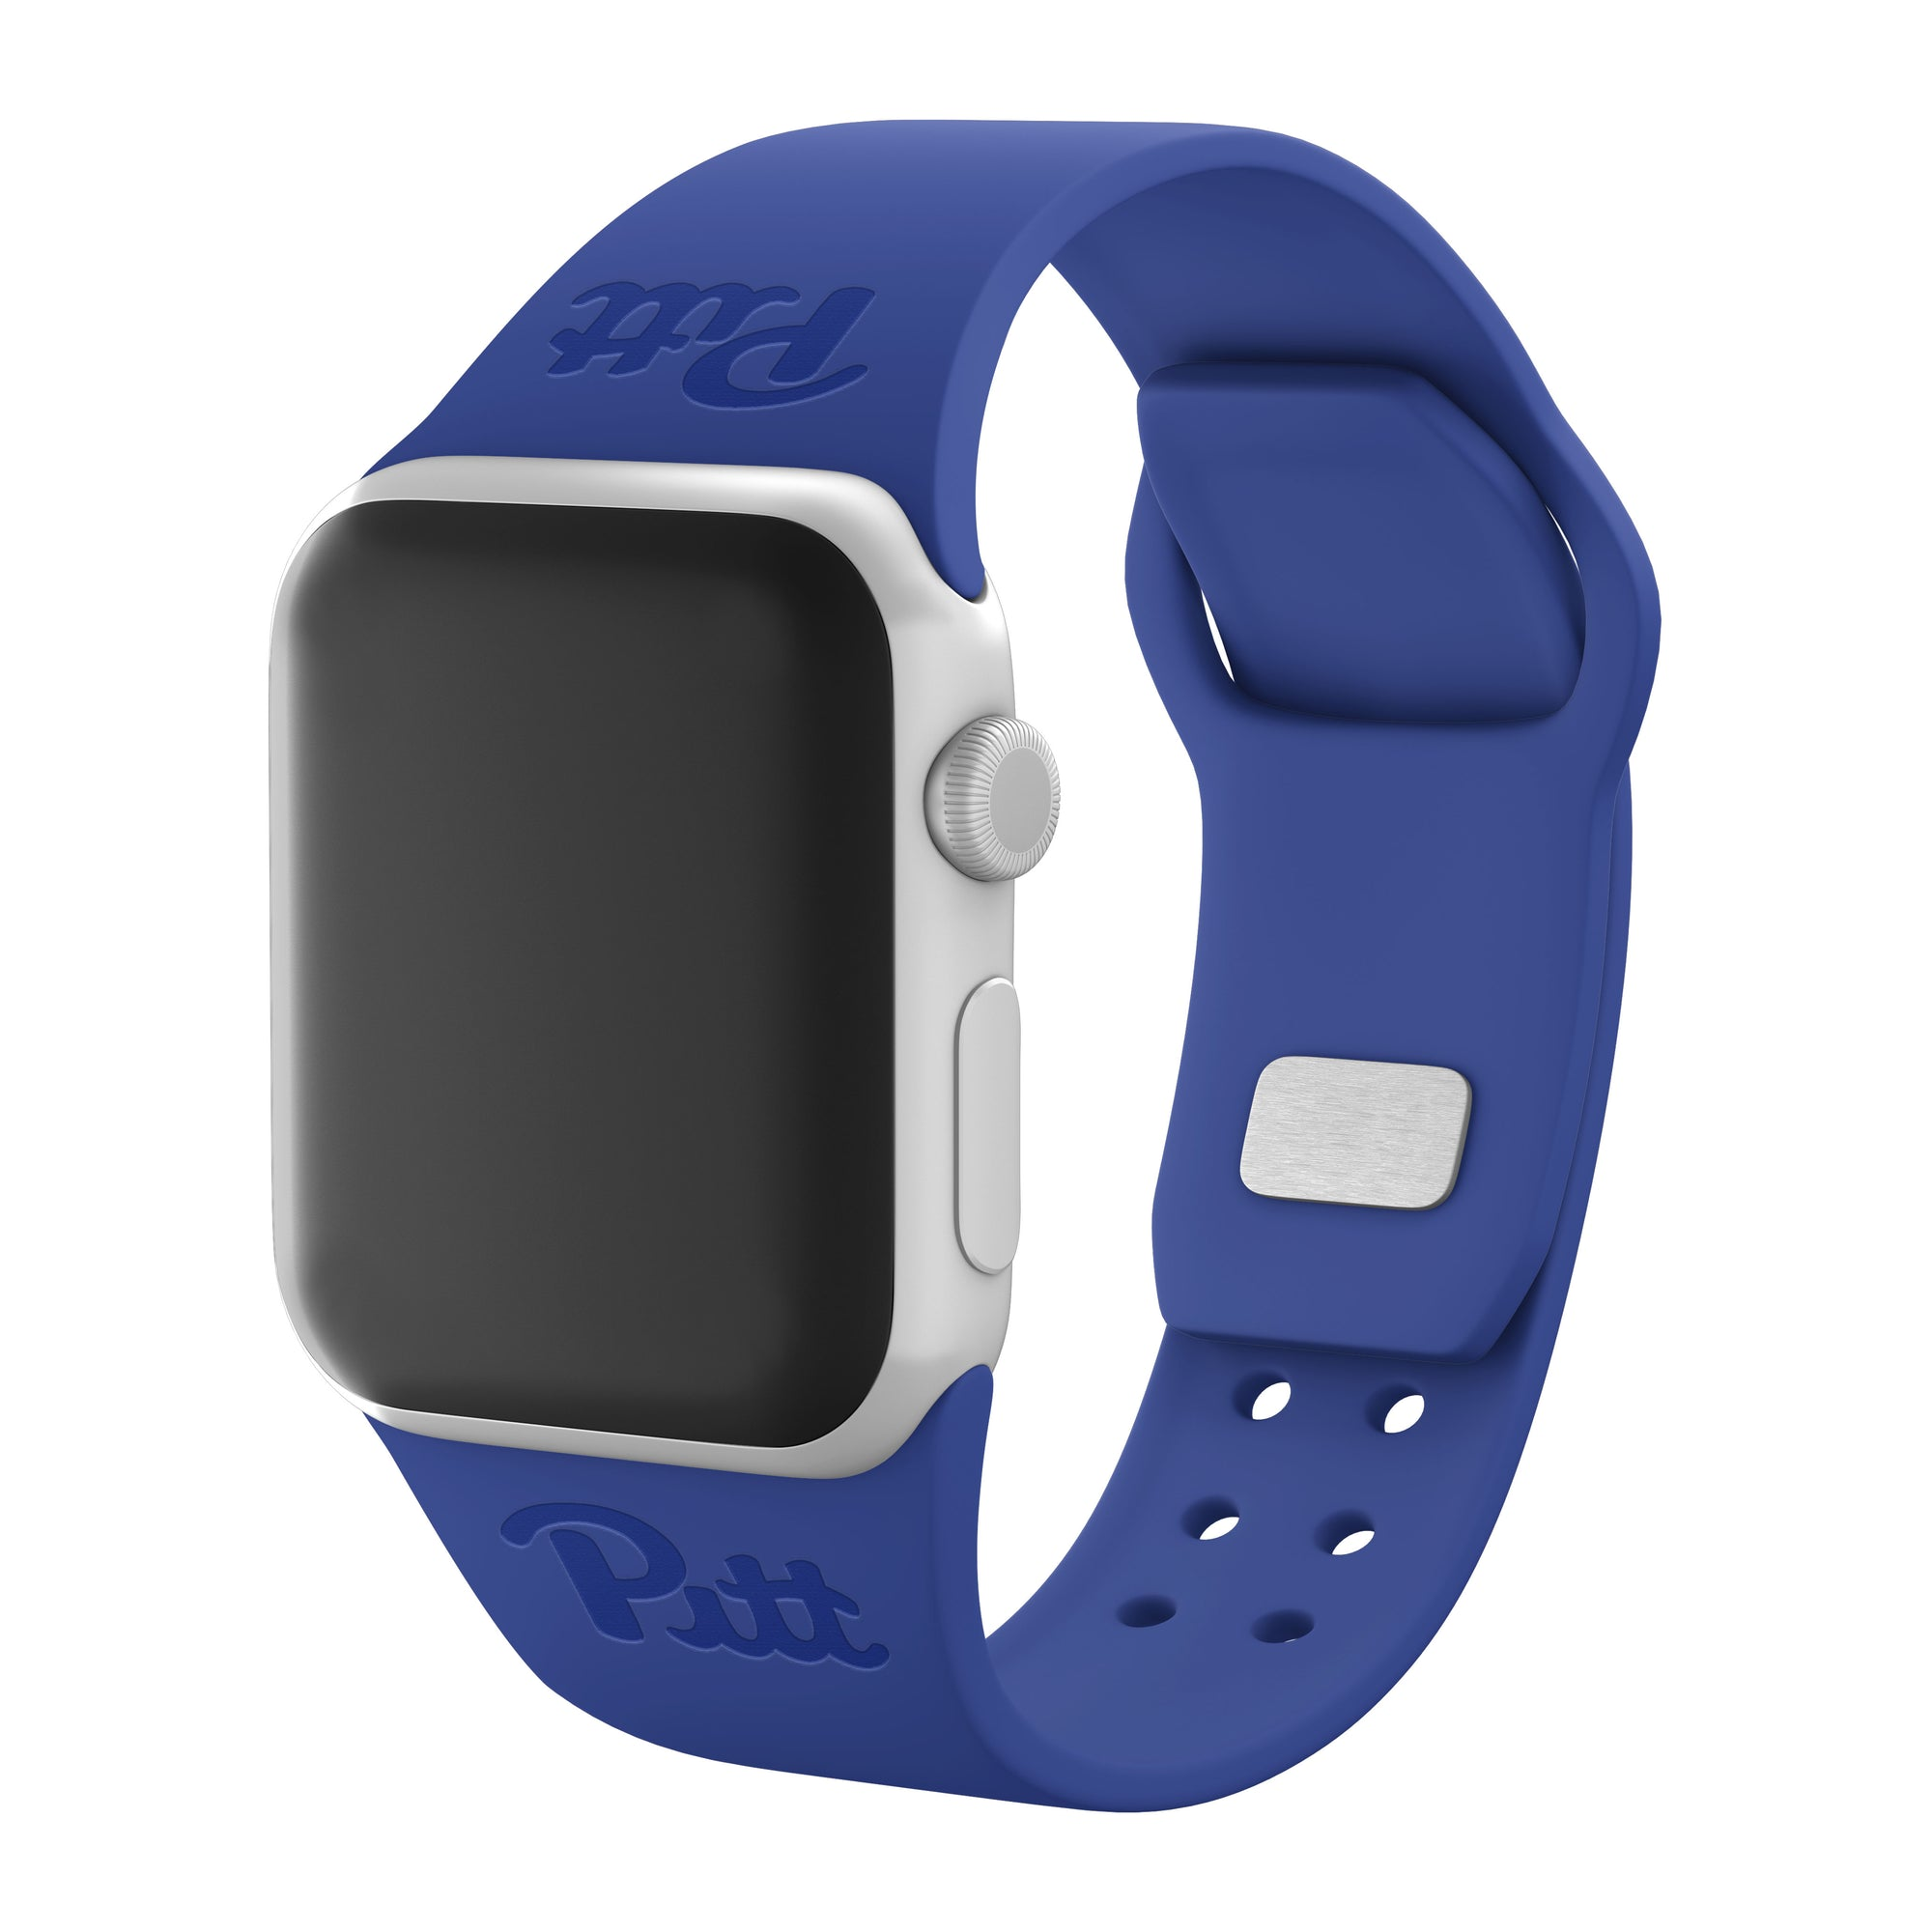 Pittsburgh Panthers Debossed Apple Watch Band - Affinity Bands